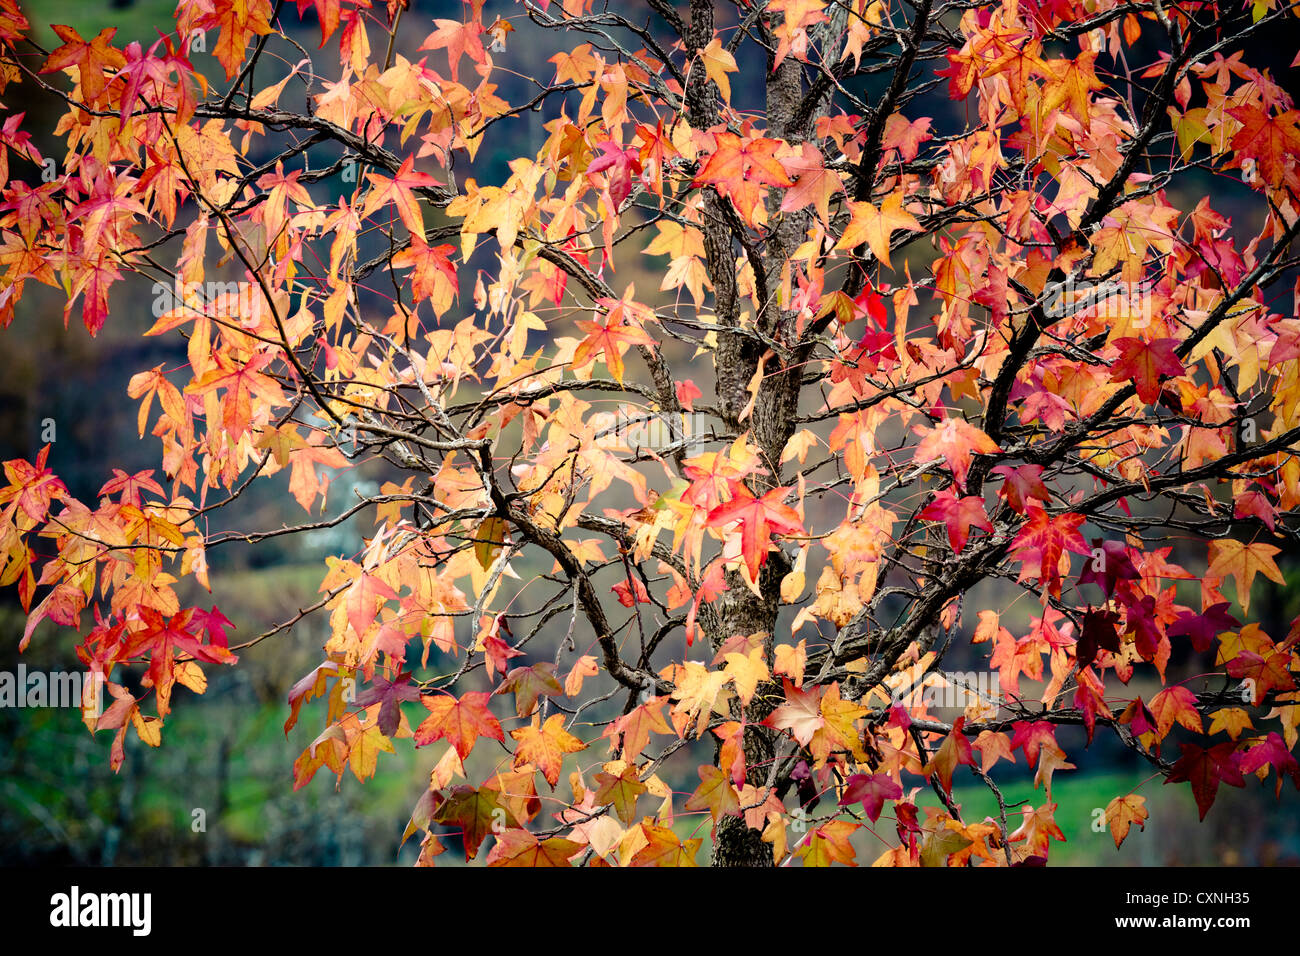 Liquidambar (Liquidambar styraciflua). Leaves in autumn. - Stock Image